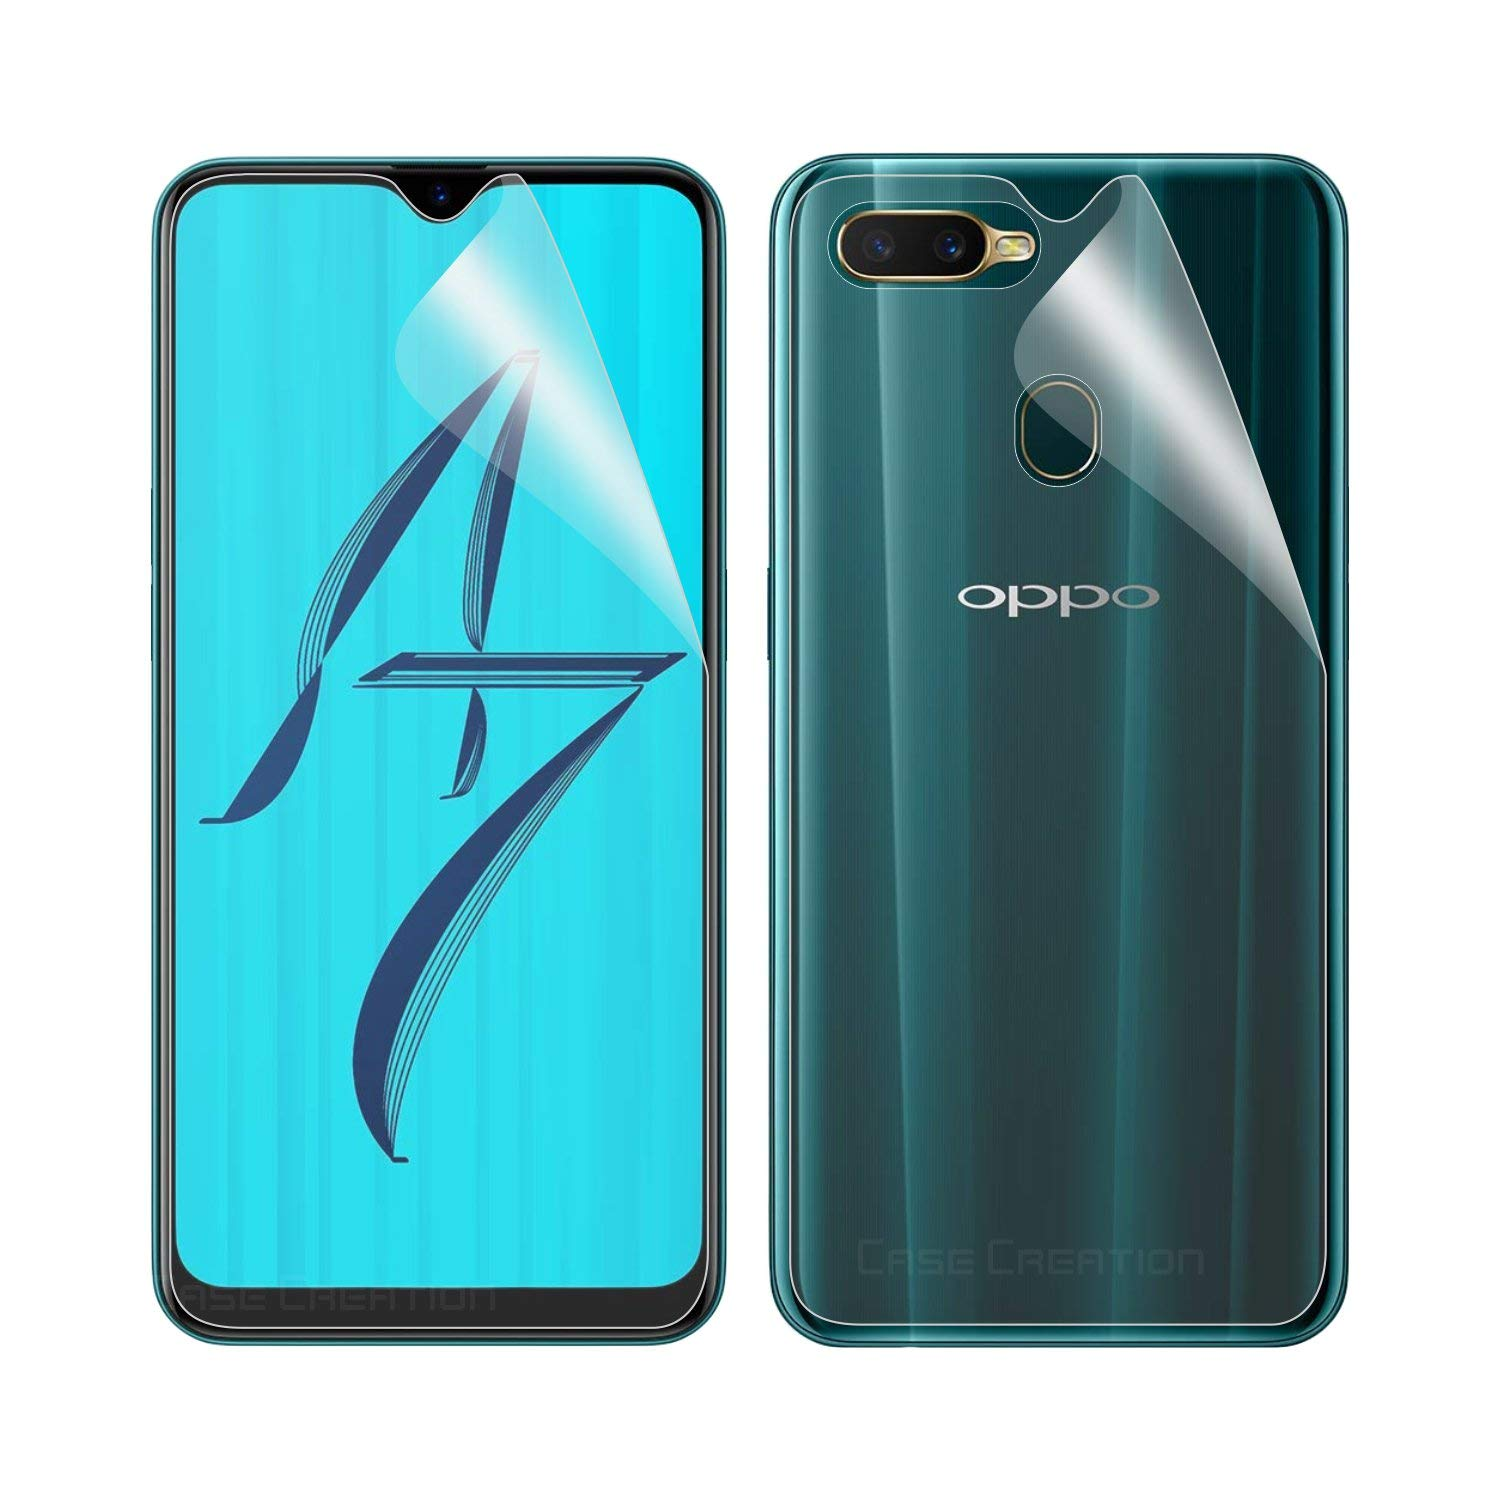 Case Creation Oppo A7 Front Back Protection,HD Screen Guard Scratch  Protector for Oppo A7 / OppoA7 (6.20-inch): Amazon.in: Electronics